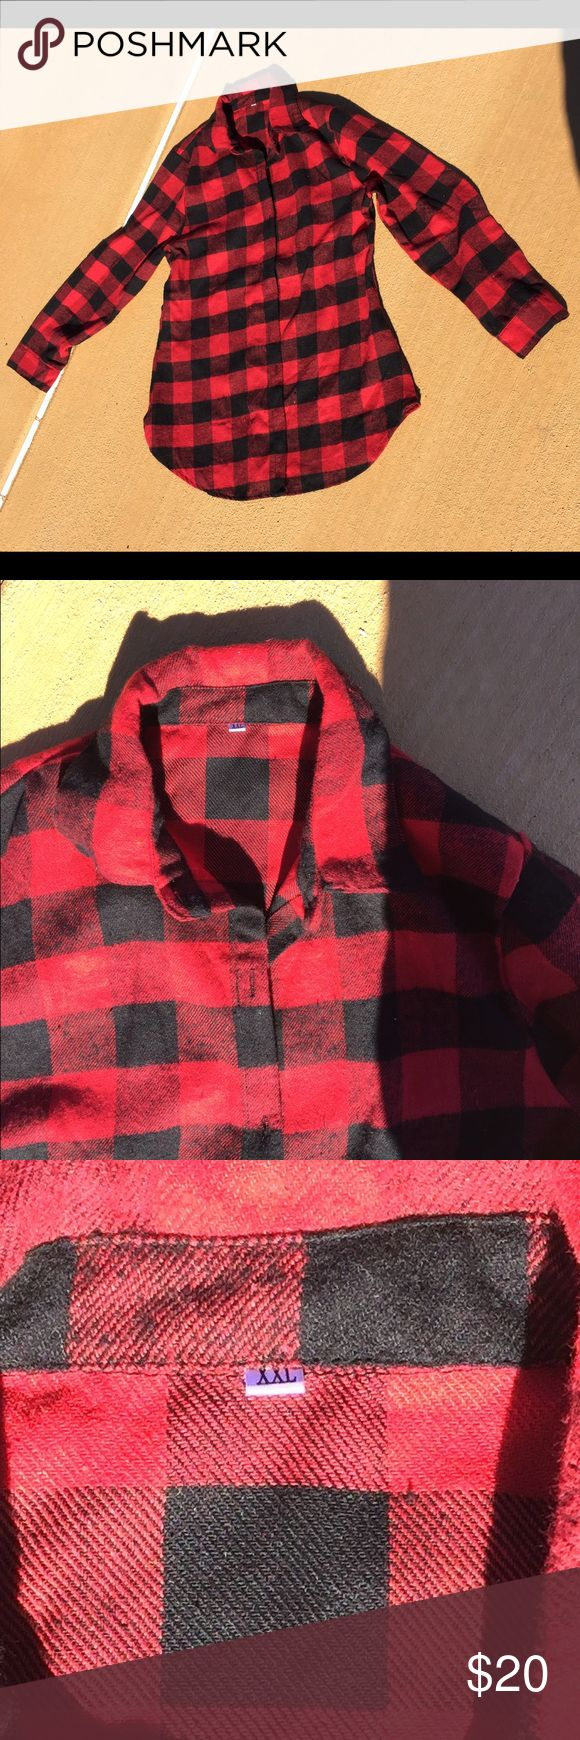 ❤️ Long Flannel Shirt Cute With Leggings ❤️ ❤️ Long Flannel Shirt Cute With Leggings ❤️ This shirt fits like a Medium into way a XXL !! It's soft !!! And if it fit me I'd keep it 😊 Tops Button Down Shirts